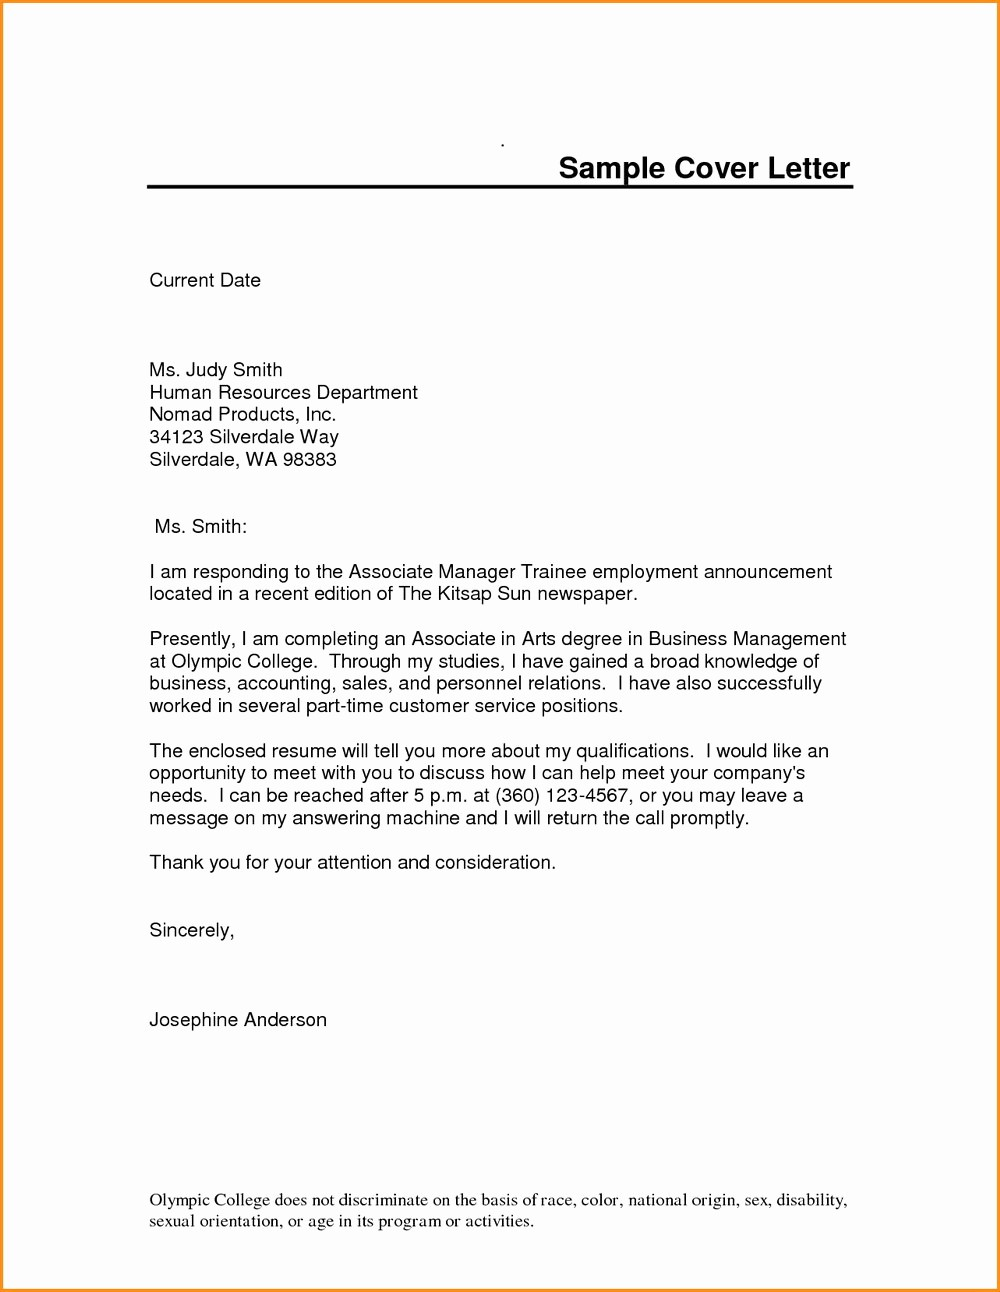 Free Resume Cover Letter Template Awesome Cover Letters